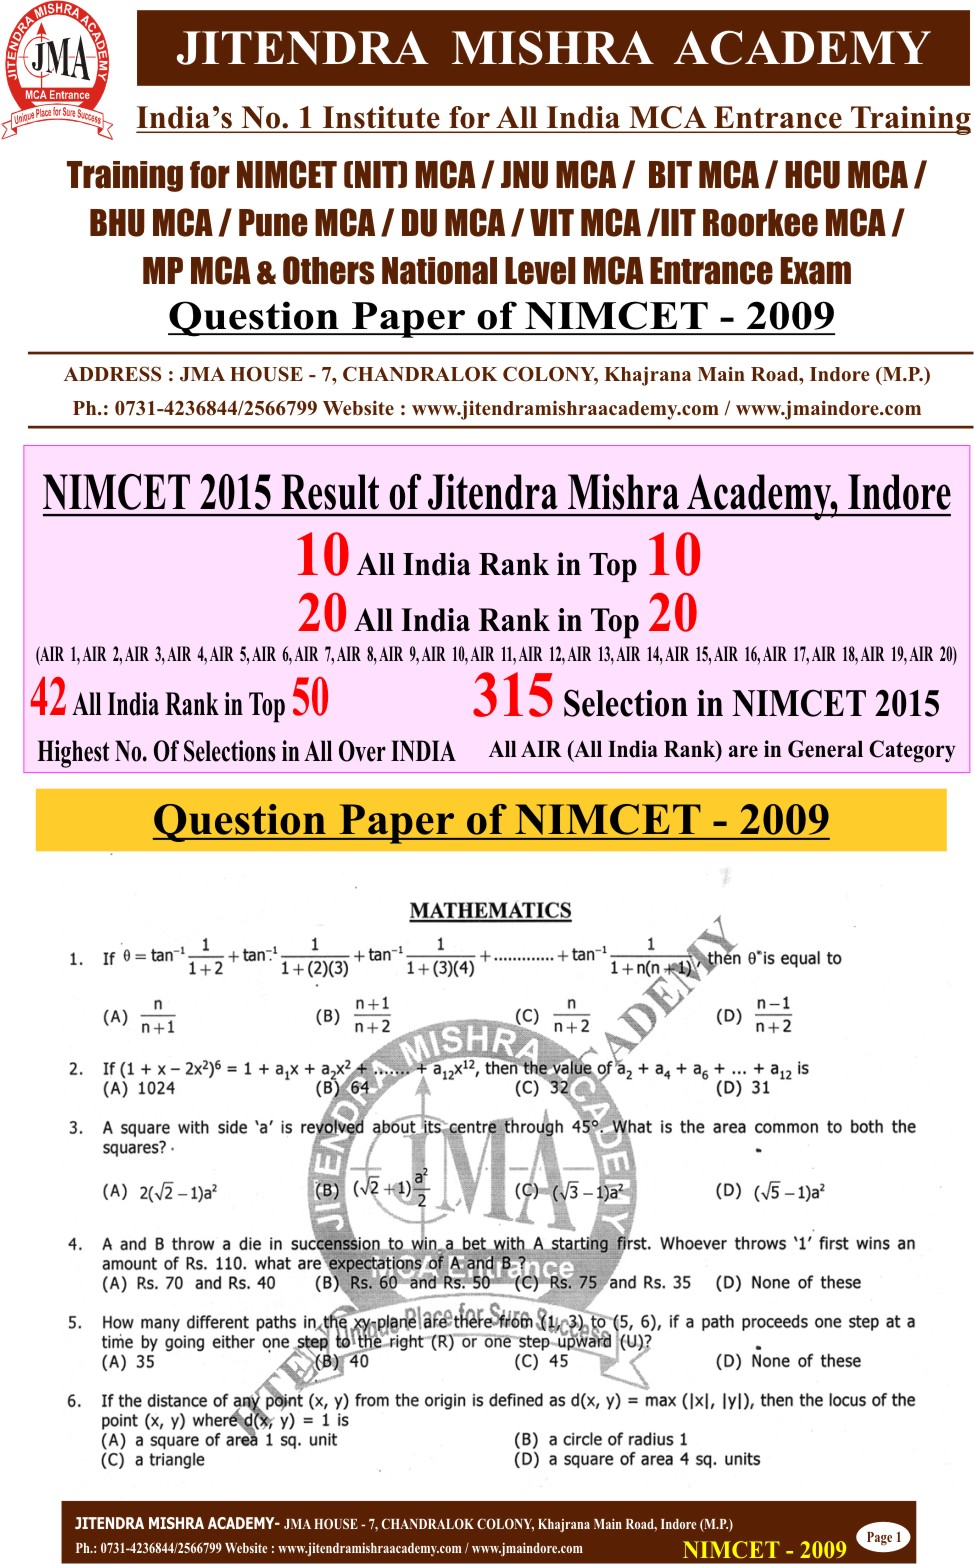 NIMCET 2009 PAPER (FIRST PAGE)